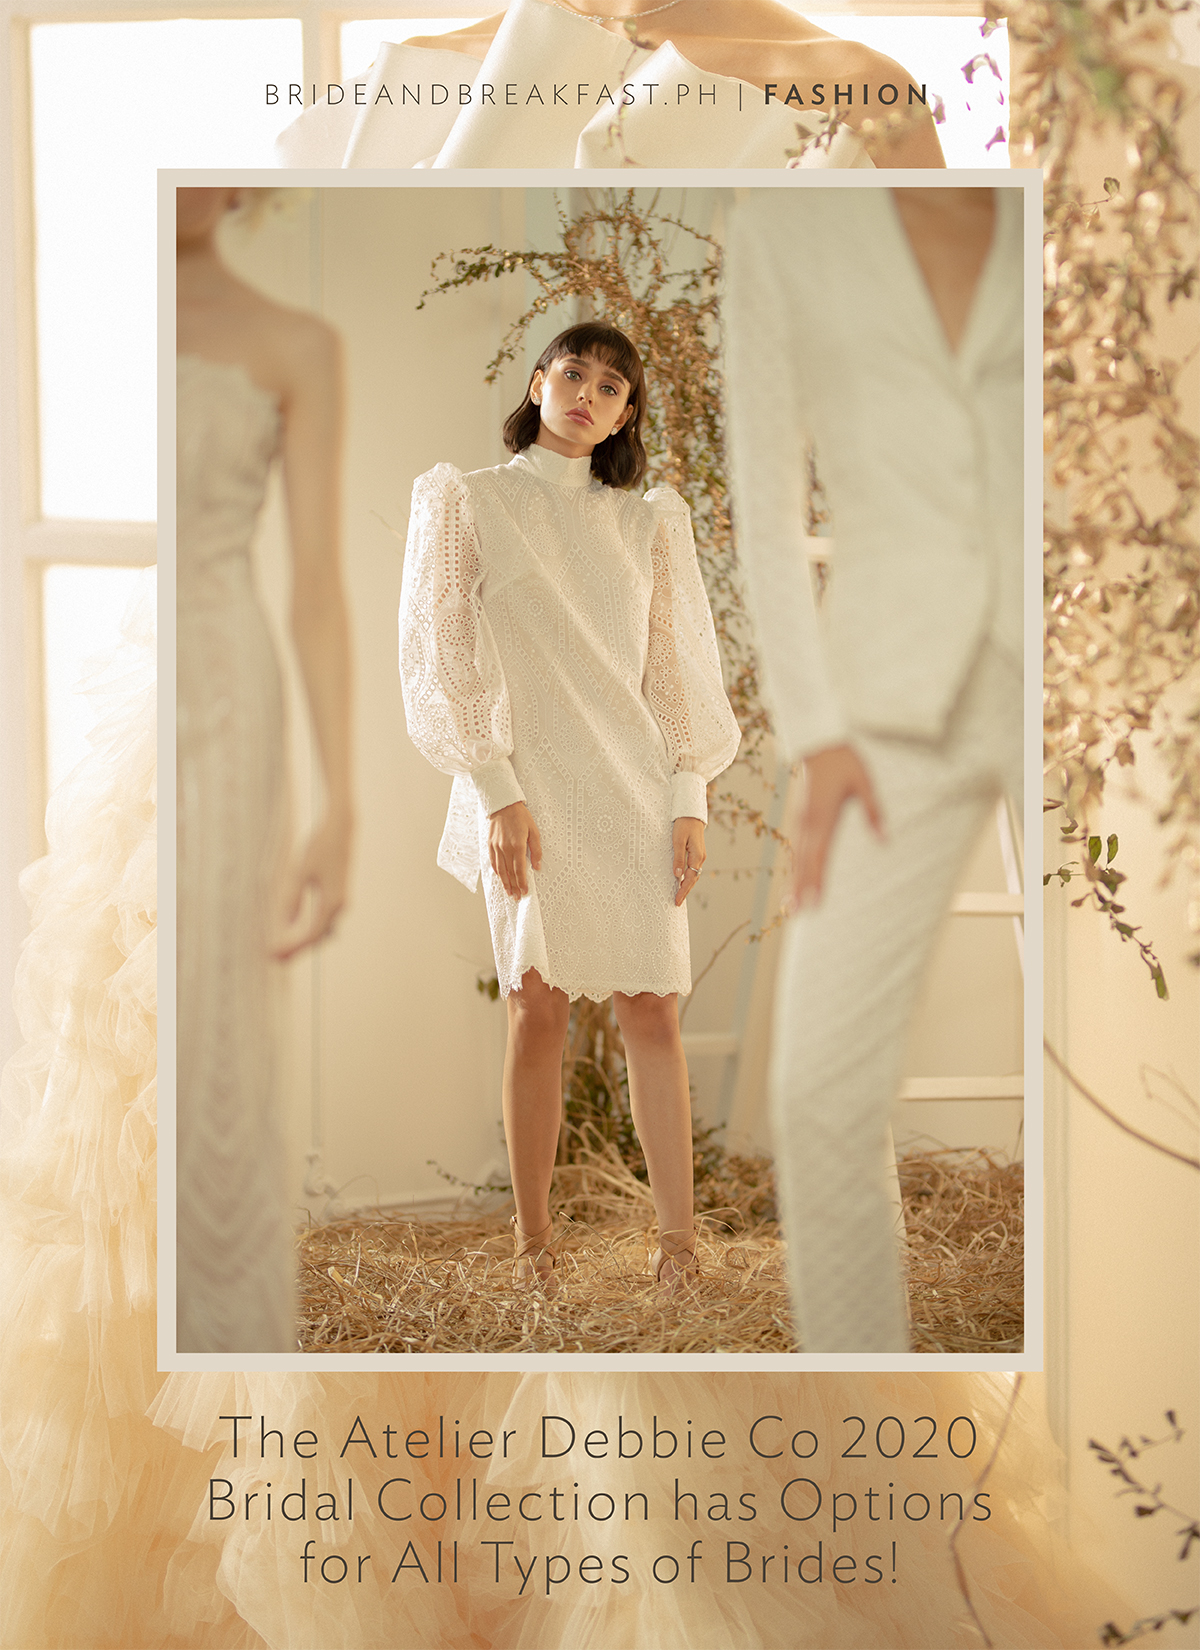 The Atelier Debbie Co 2020 Bridal Collection has Options for All Types of Brides!